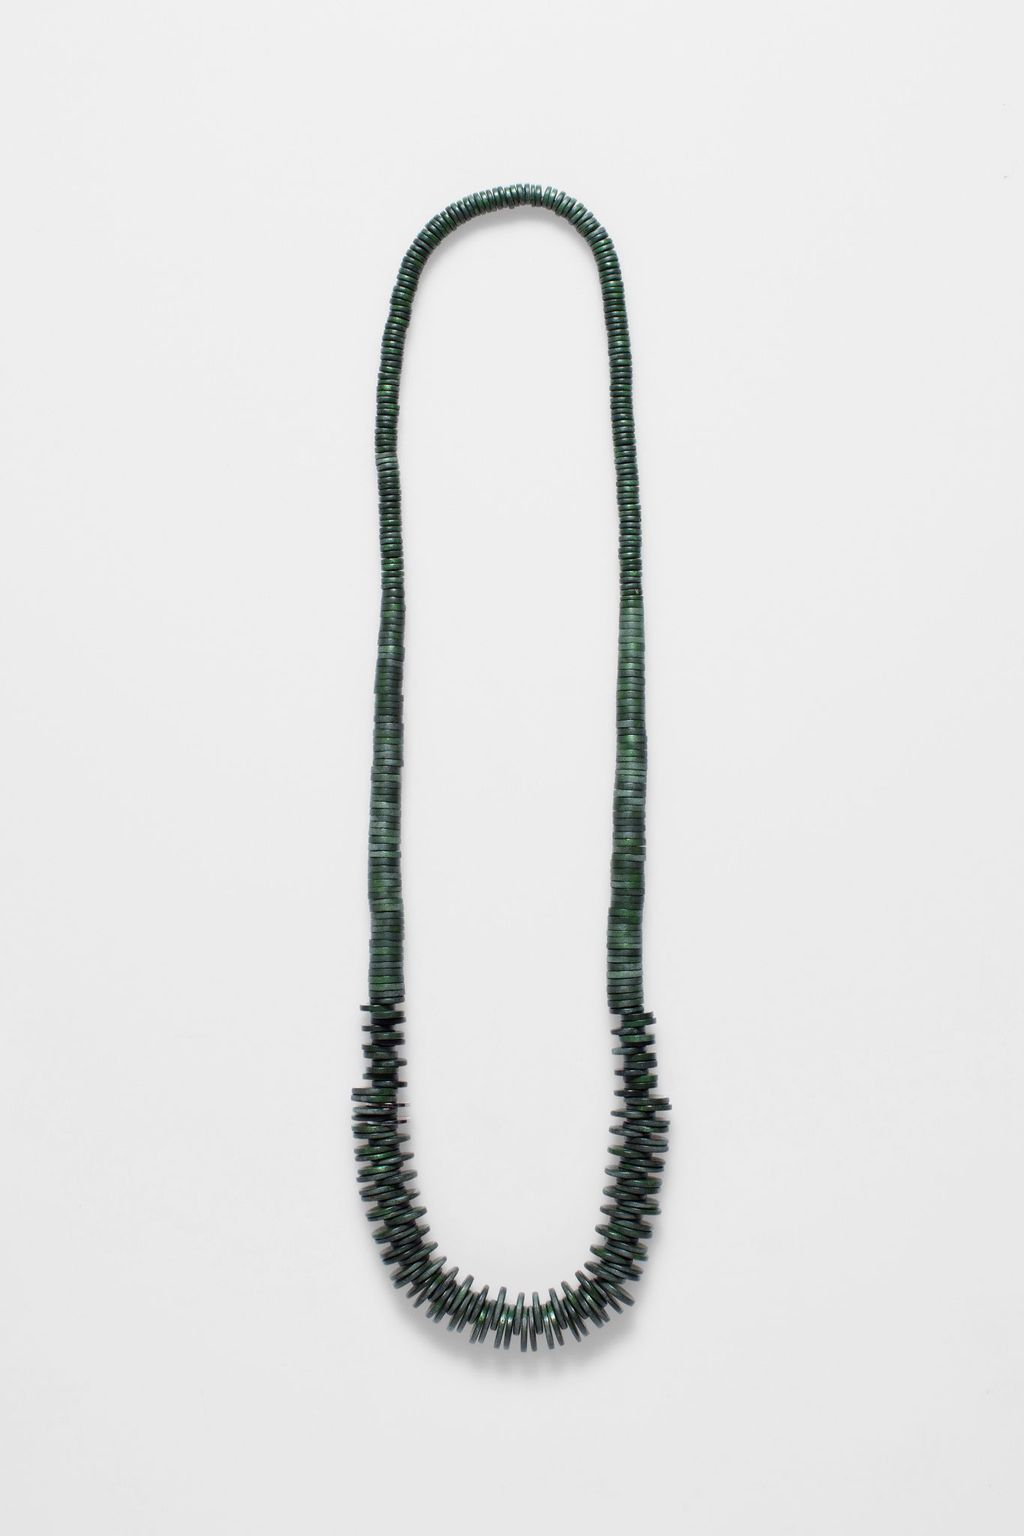 Paz Necklace - Olive